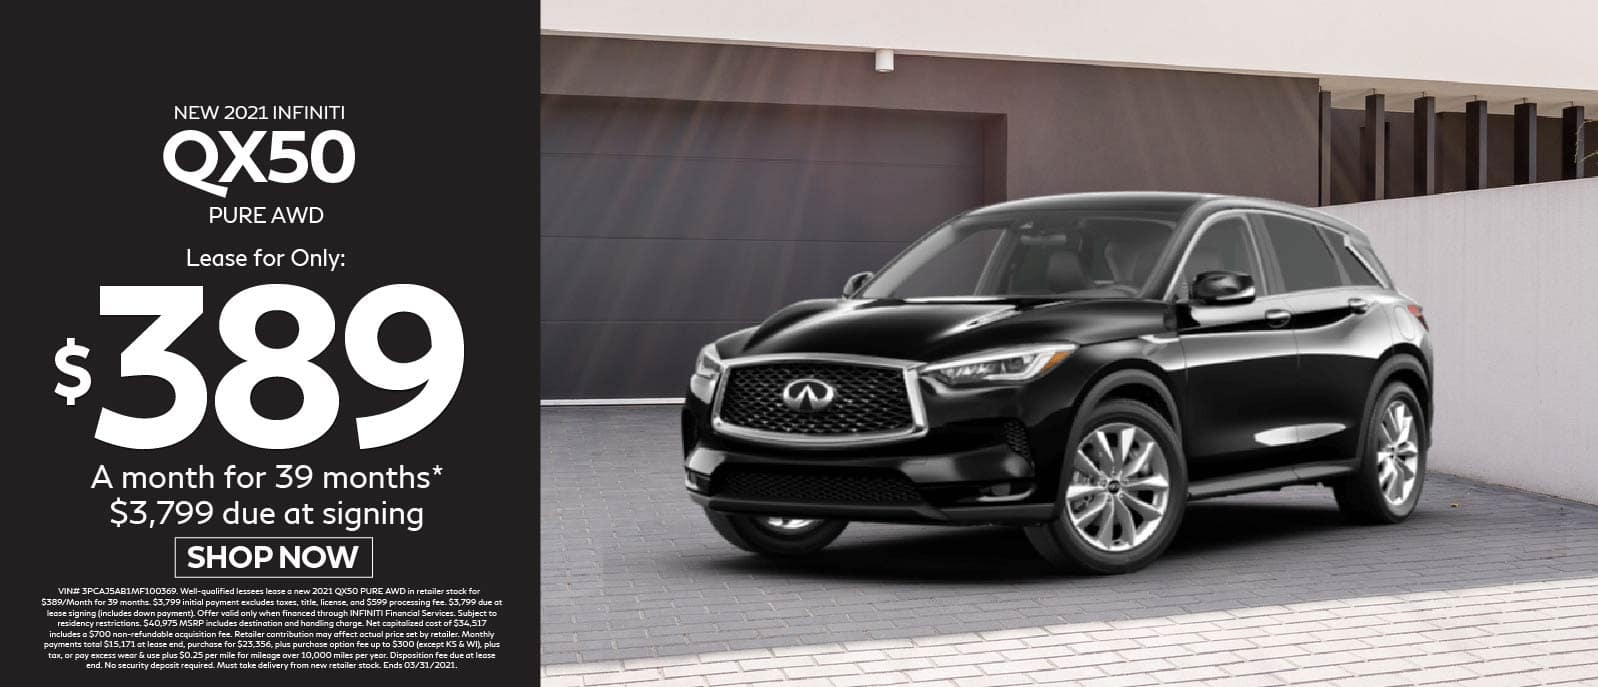 New 2021 INFINITI QX50 Pure AWD Lease for $389 a month for 39 months, $3,799 due at signing